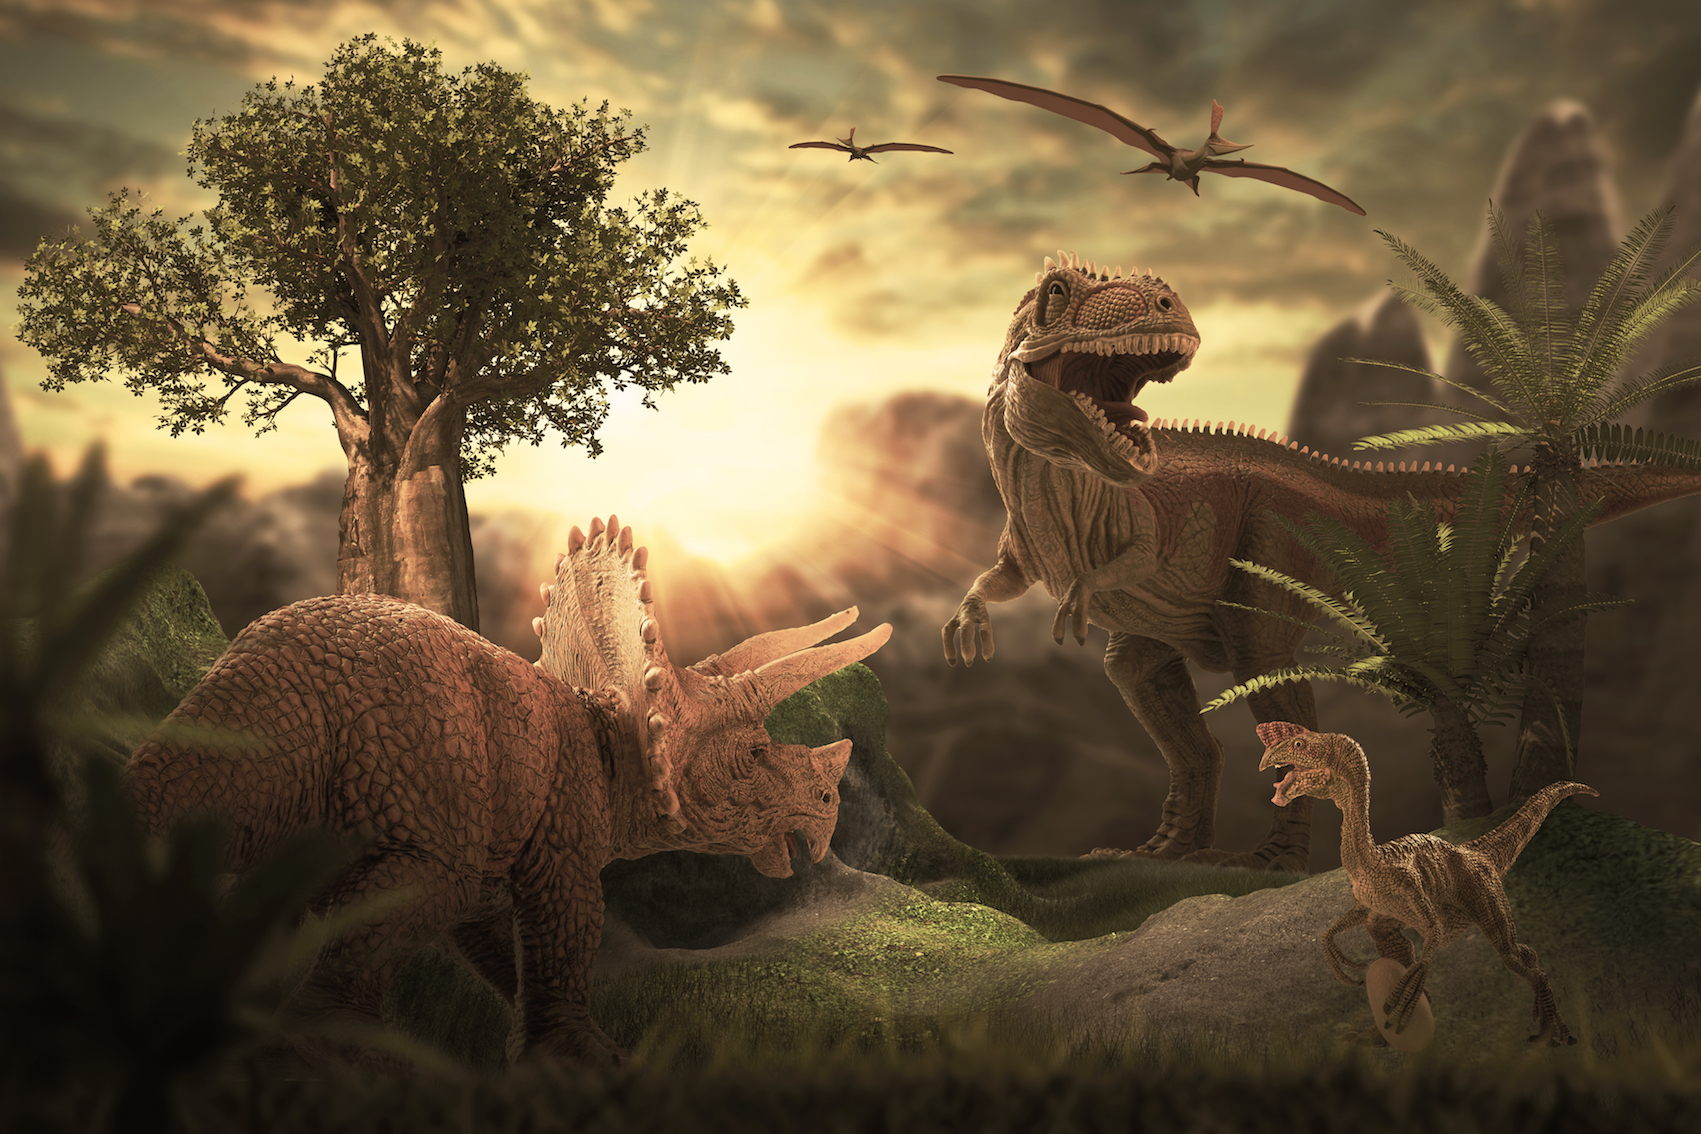 Researchers at the University of Bristol have discovered that a mass extinction event which occurred 232 million years ago is what gave rise to the dinosaurs.